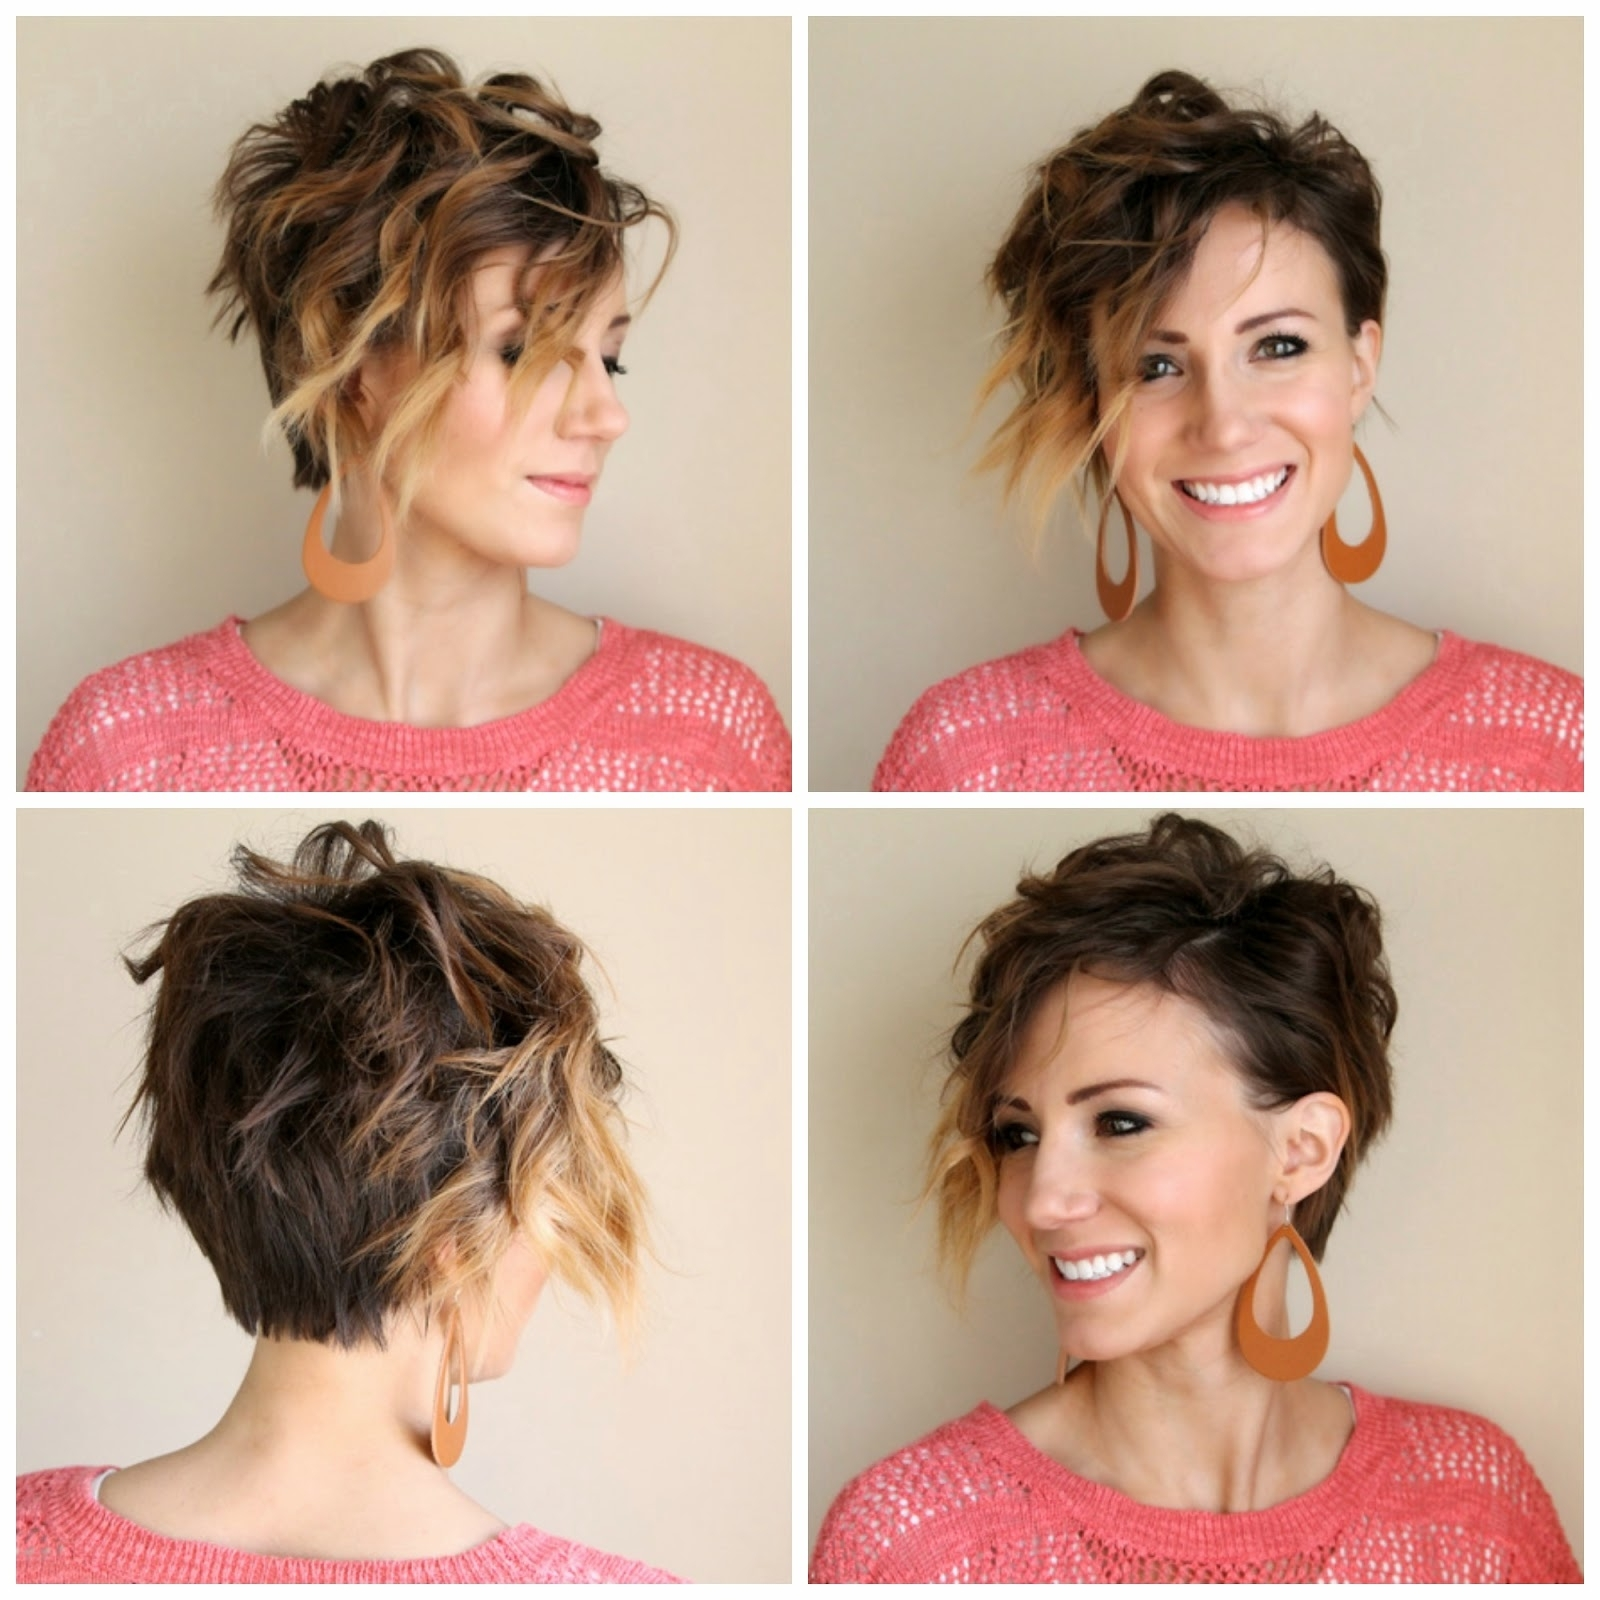 How To Curl A Long Pixie Tutorialone Little Momma | Short + Pertaining To Most Recent Long Pixie Hairstyles For Curly Hair (View 8 of 15)